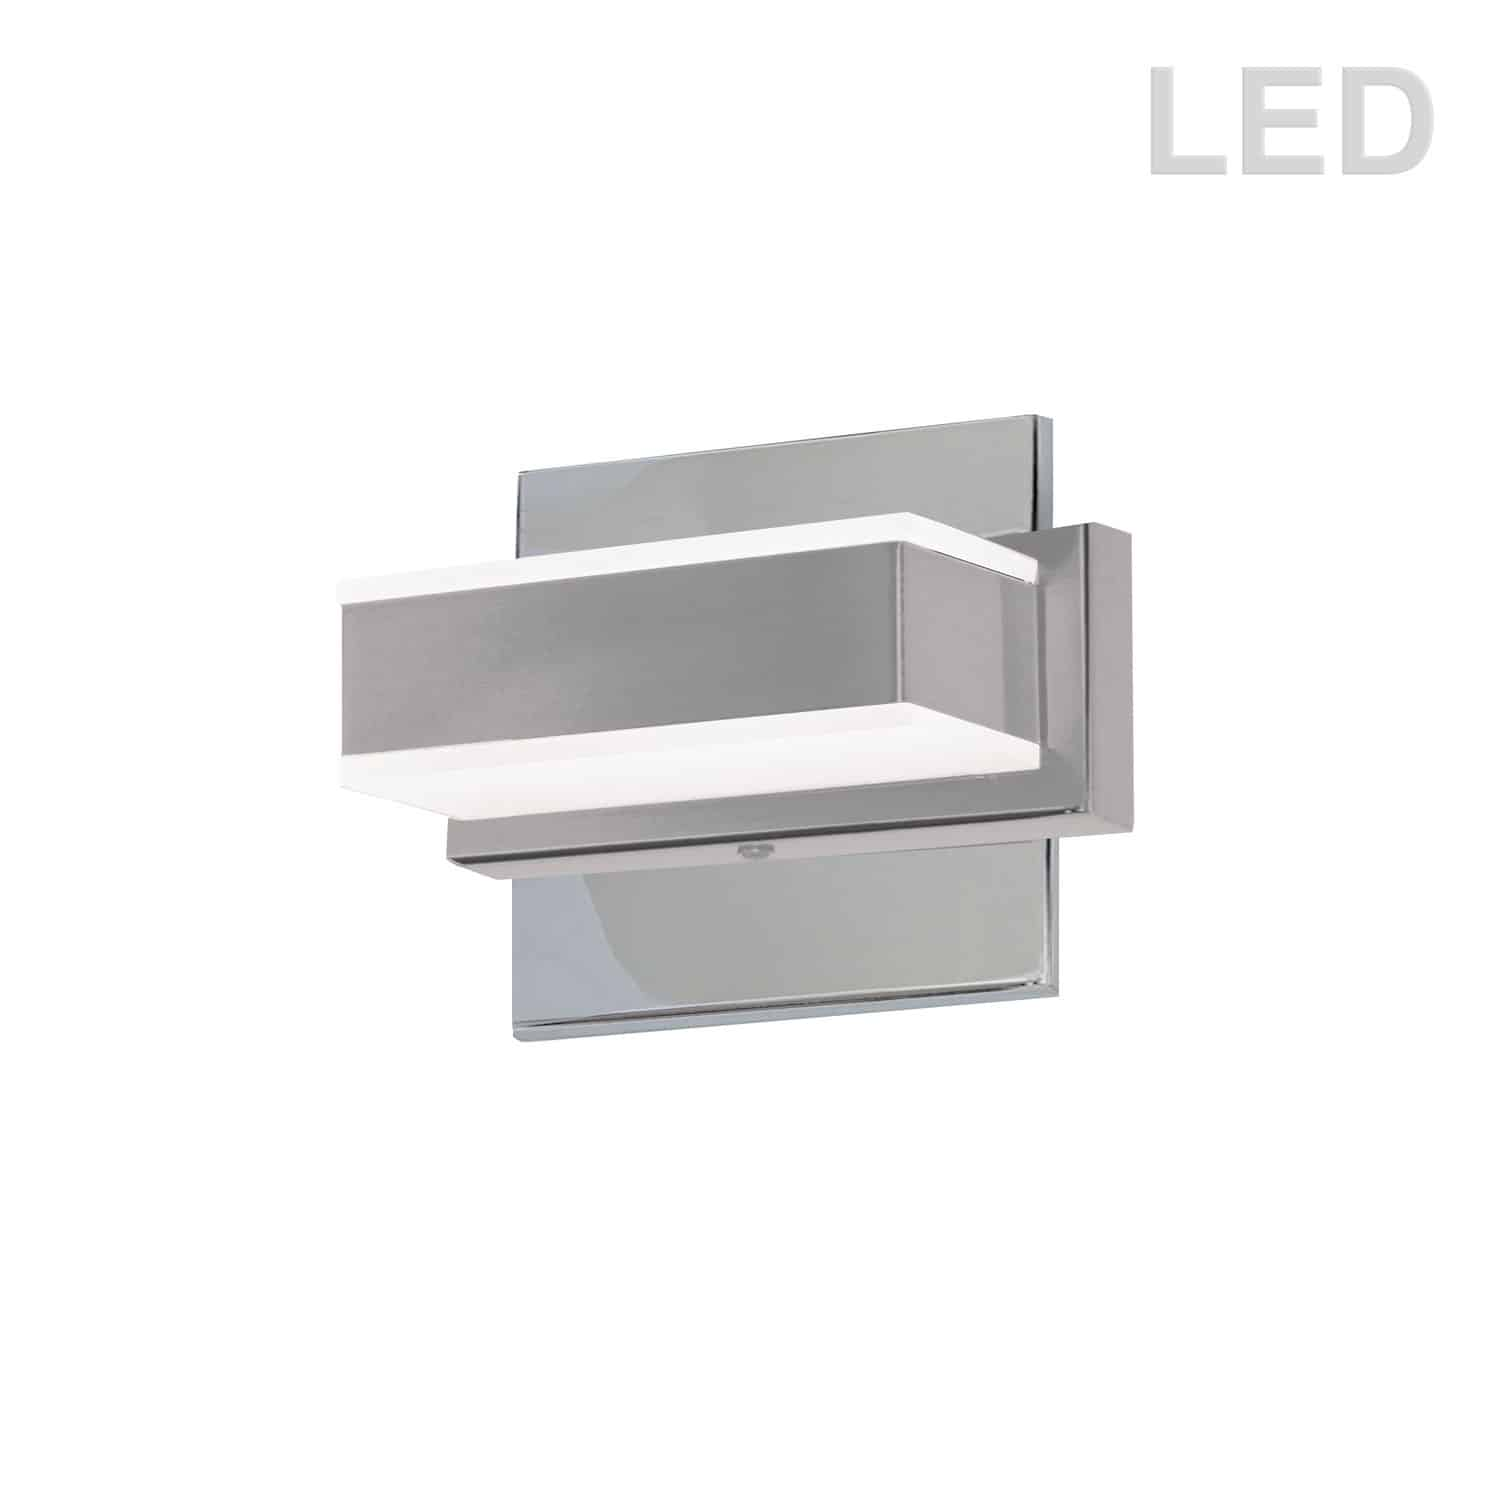 1 Light LED Wall Vanity, Polished Chrome Finish